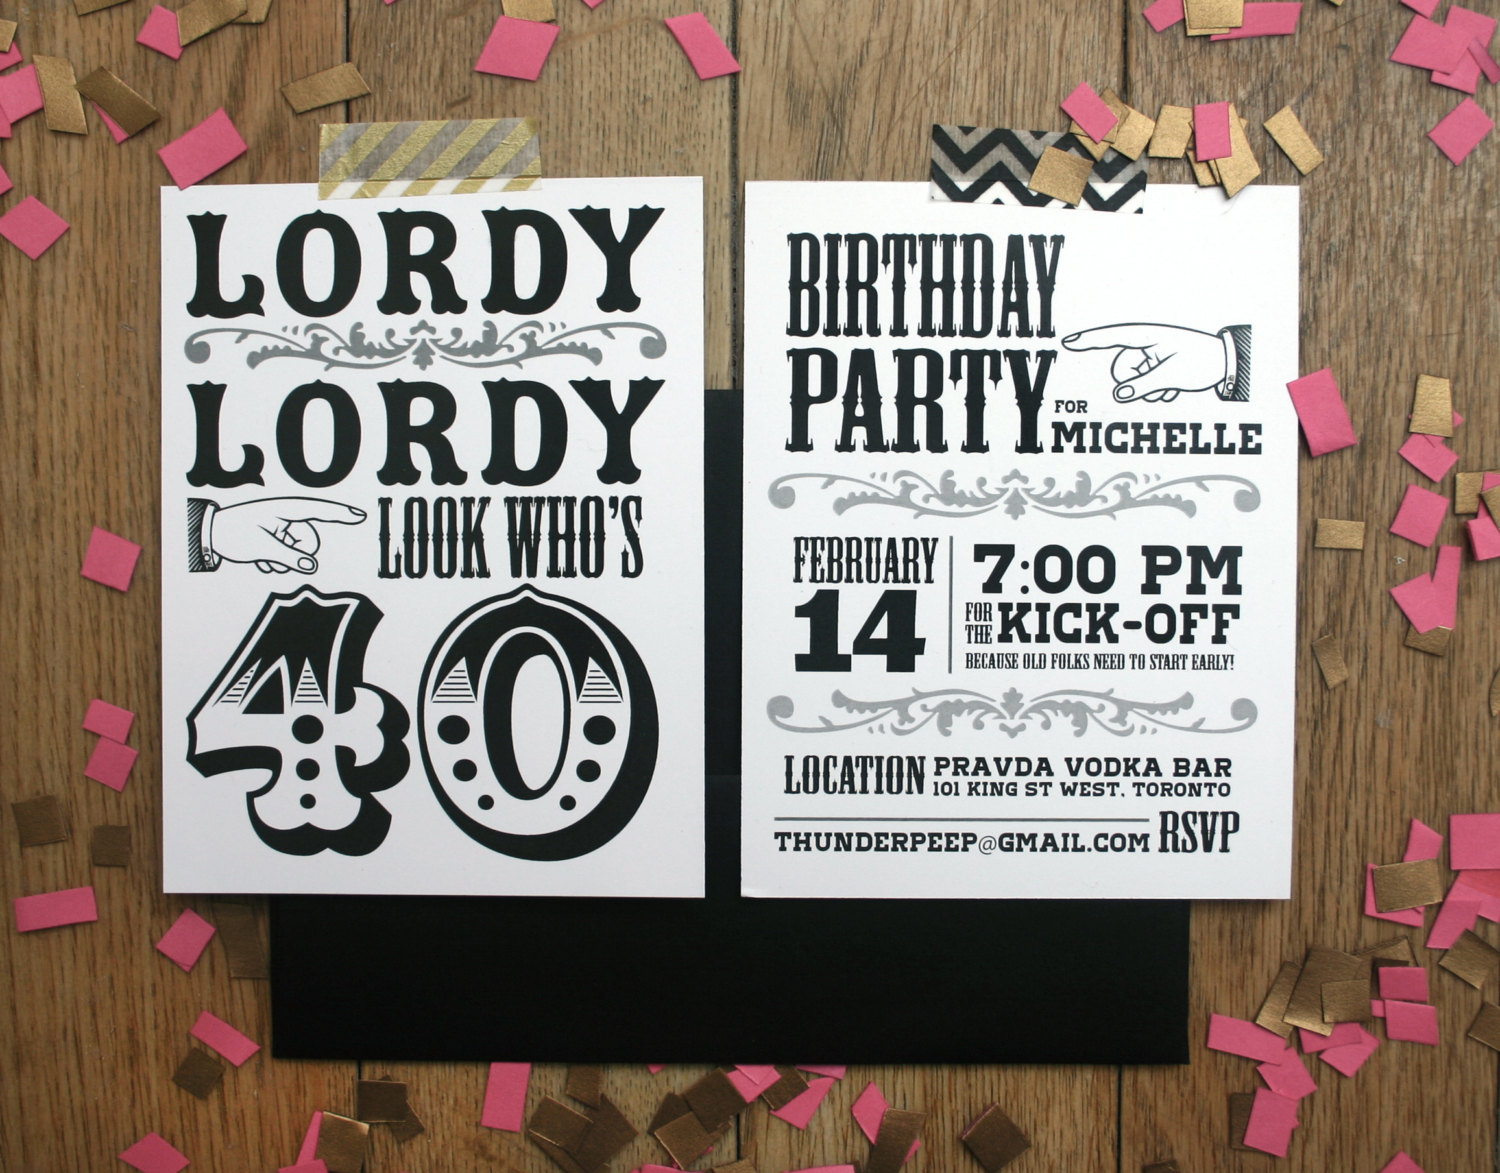 40th birthday invitation cards designs ; 40th-birthday-party-invite-how-to-make-your-own-Birthday-invitations-using-word-6